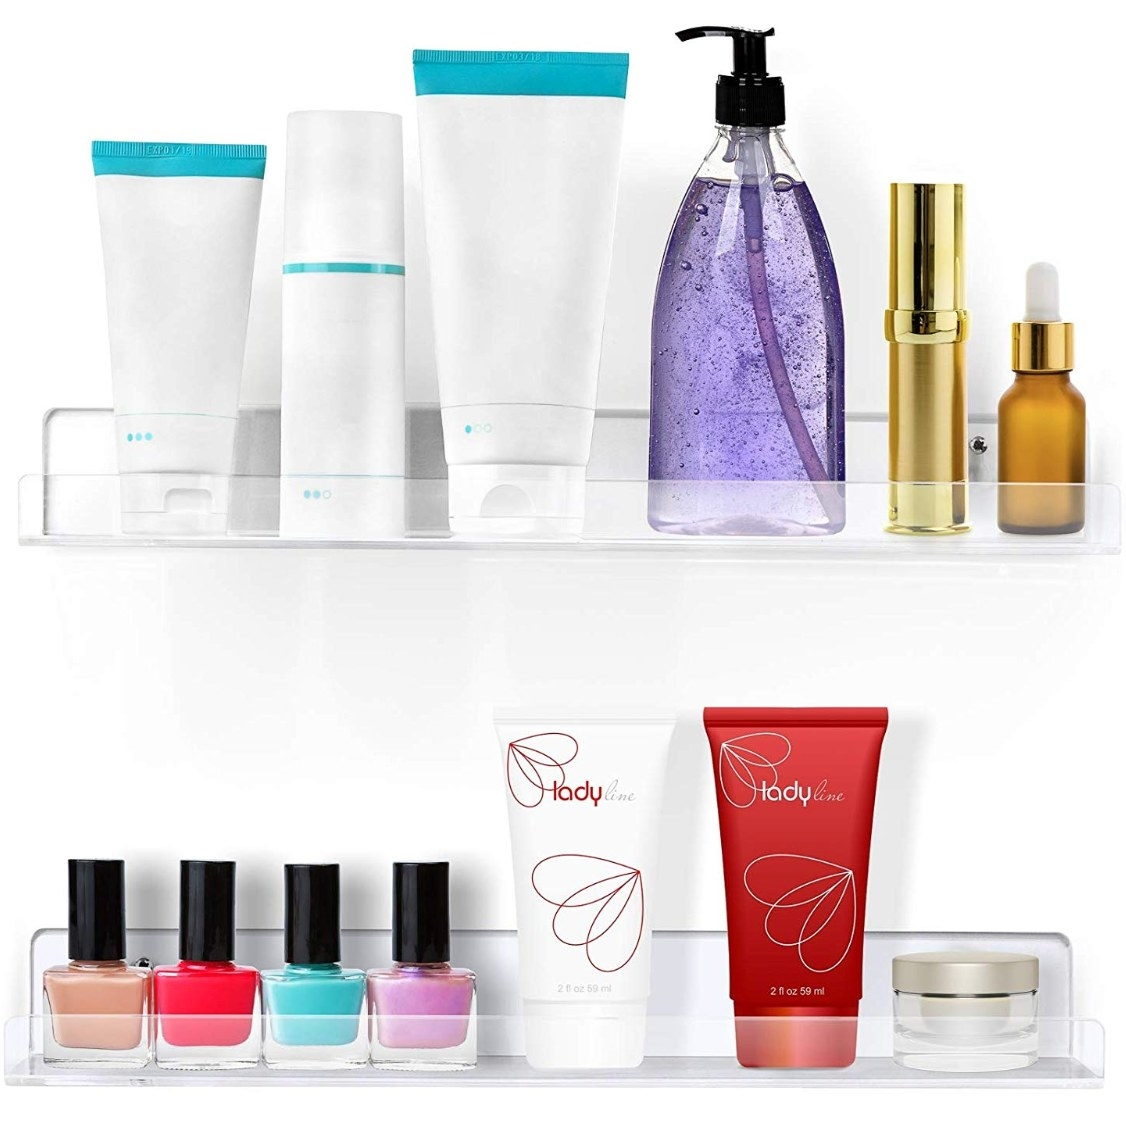 The floating shelves being used to hold colorful nail polish and lotion